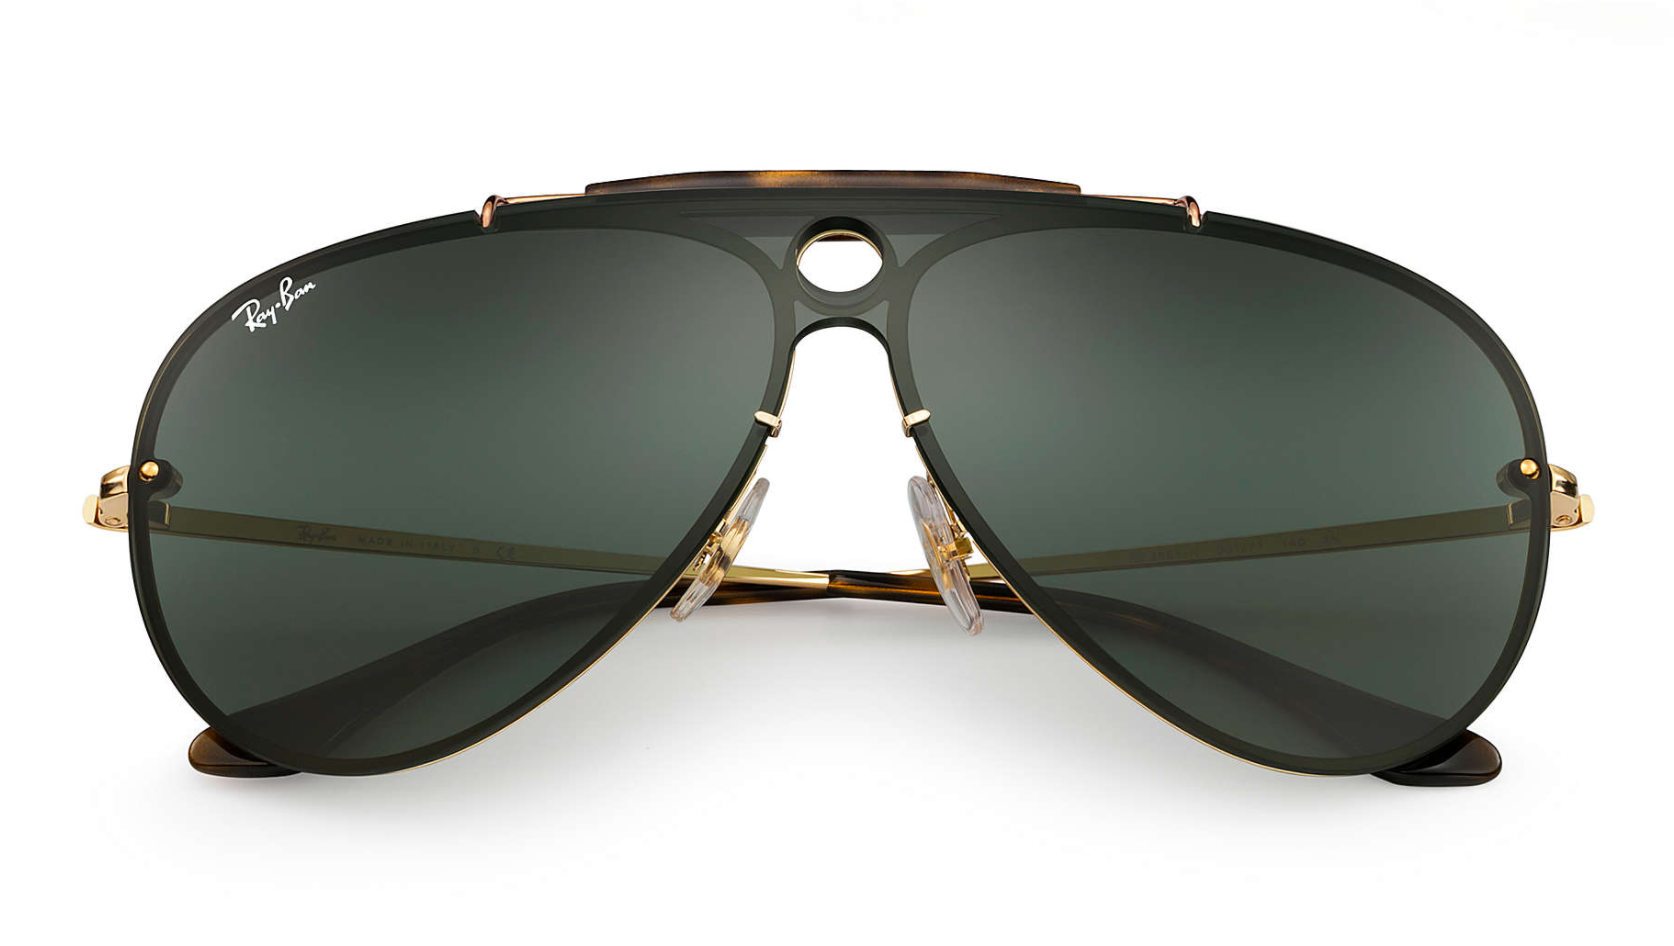 857391eb34 Ray-Ban mixes past and present with the Blaze Shooter